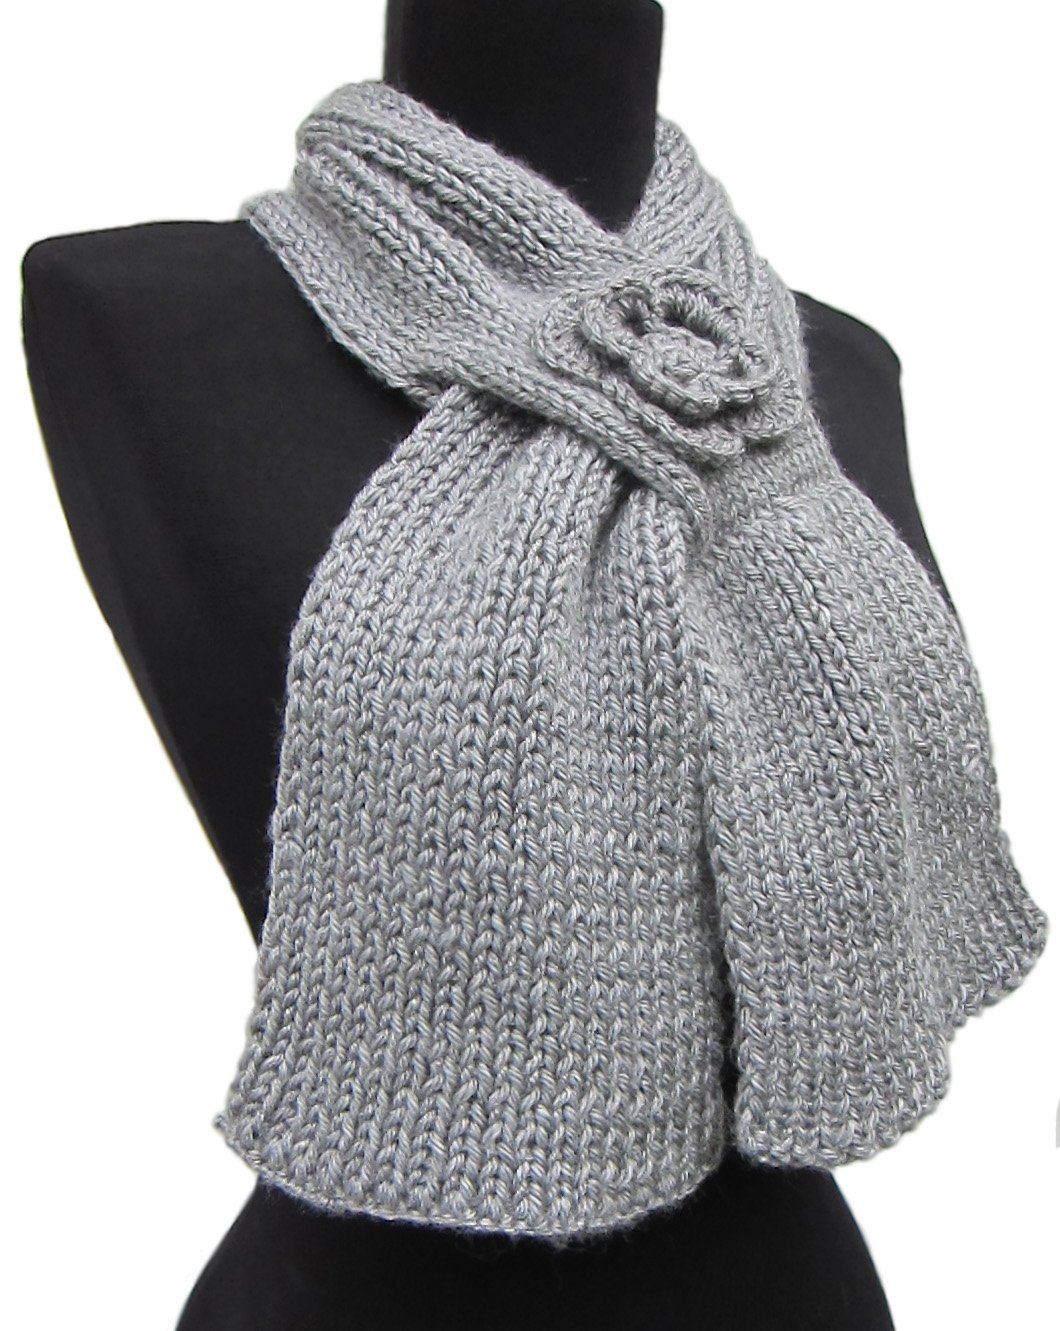 Handmade Alpaca and Wool Feminine Scarf - GRAY (CUSTOM MADE ORDER) by BARBERY Alpaca Accessories